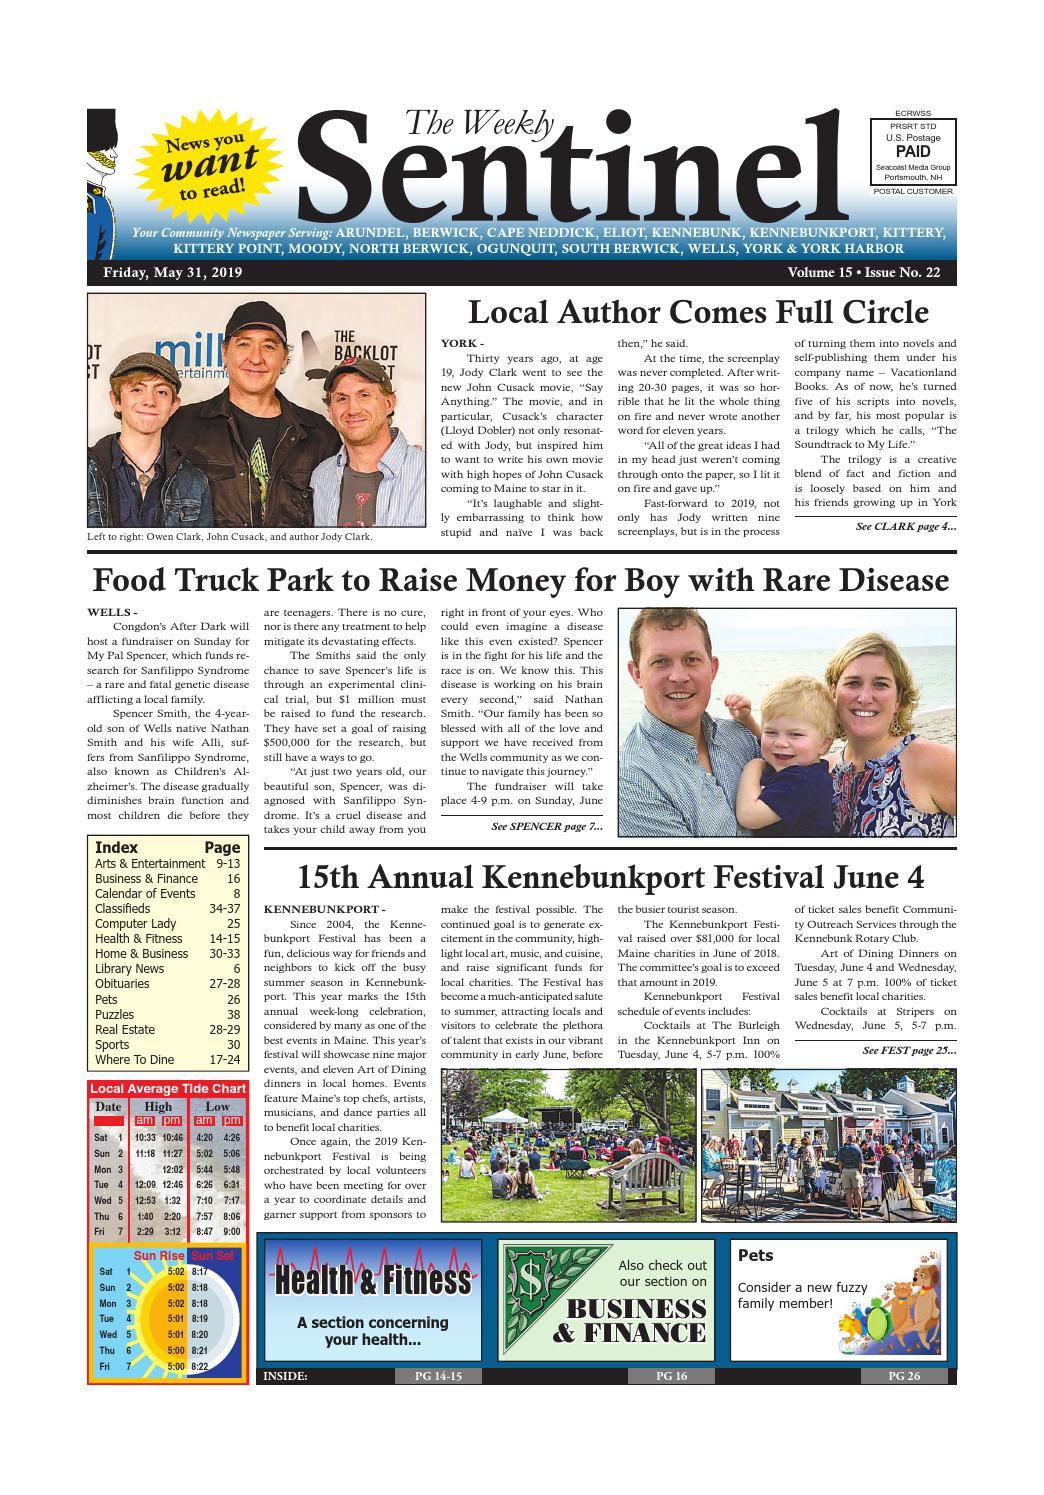 WS May 31, 2019 by Weekly Sentinel - issuu